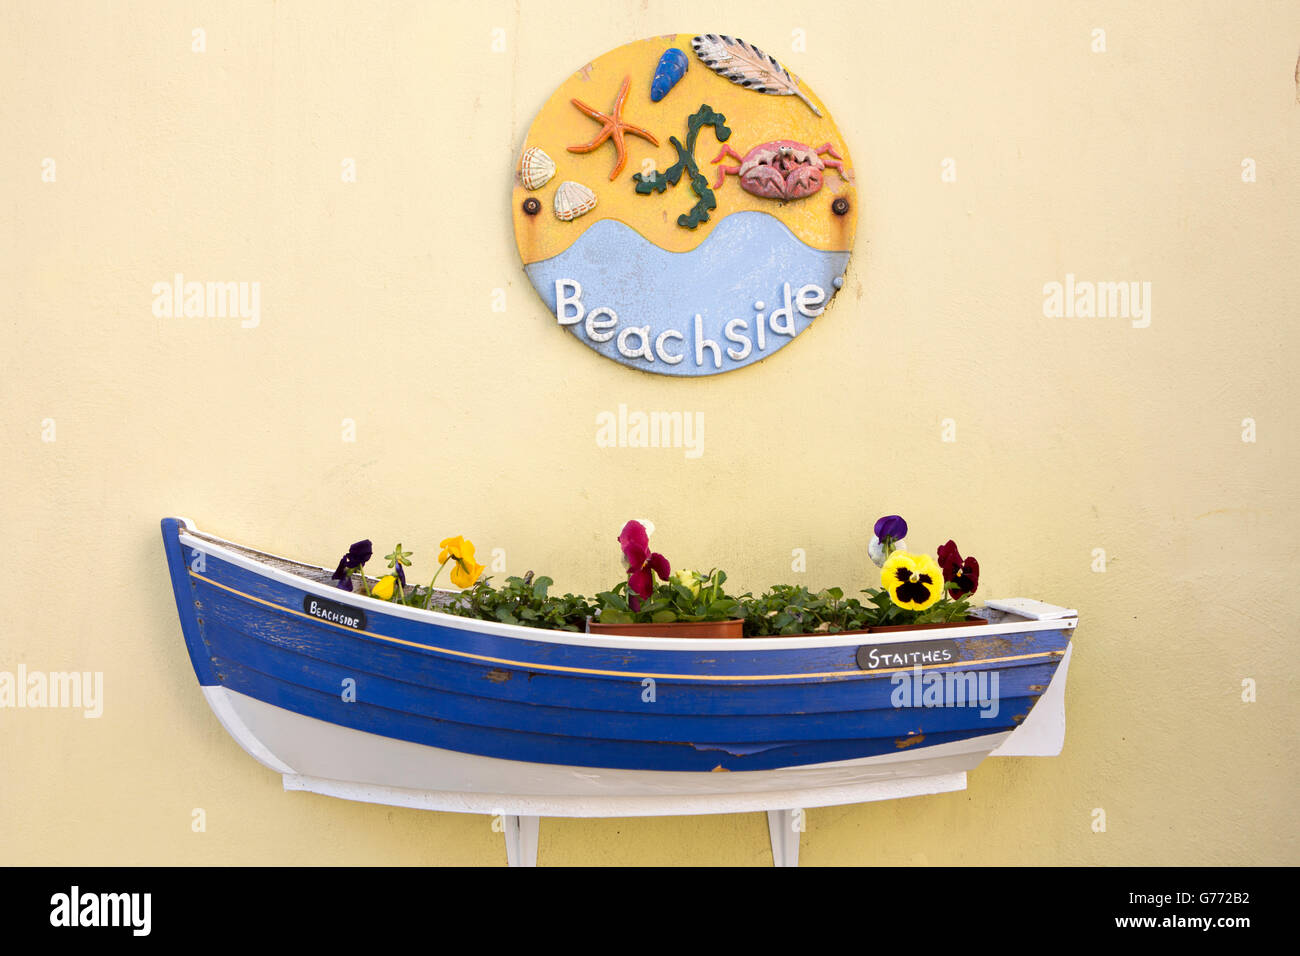 UK, England, Yorkshire, Staithes, boat shaped flower planter and ceramic Beachside house name plate Stock Photo